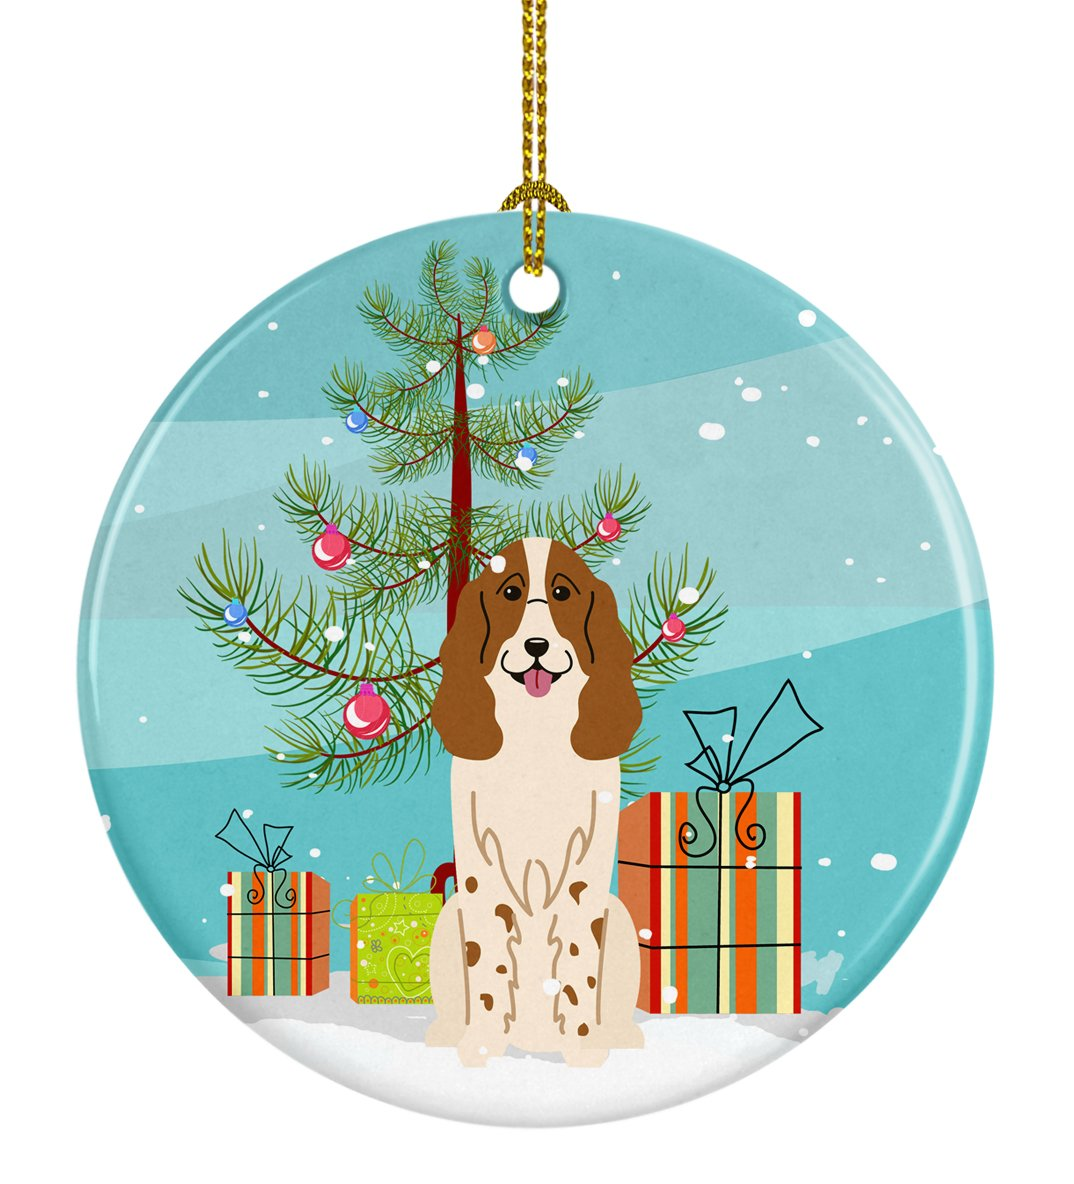 Merry Christmas Tree Russian Spaniel Ceramic Ornament BB4156CO1 by Caroline's Treasures